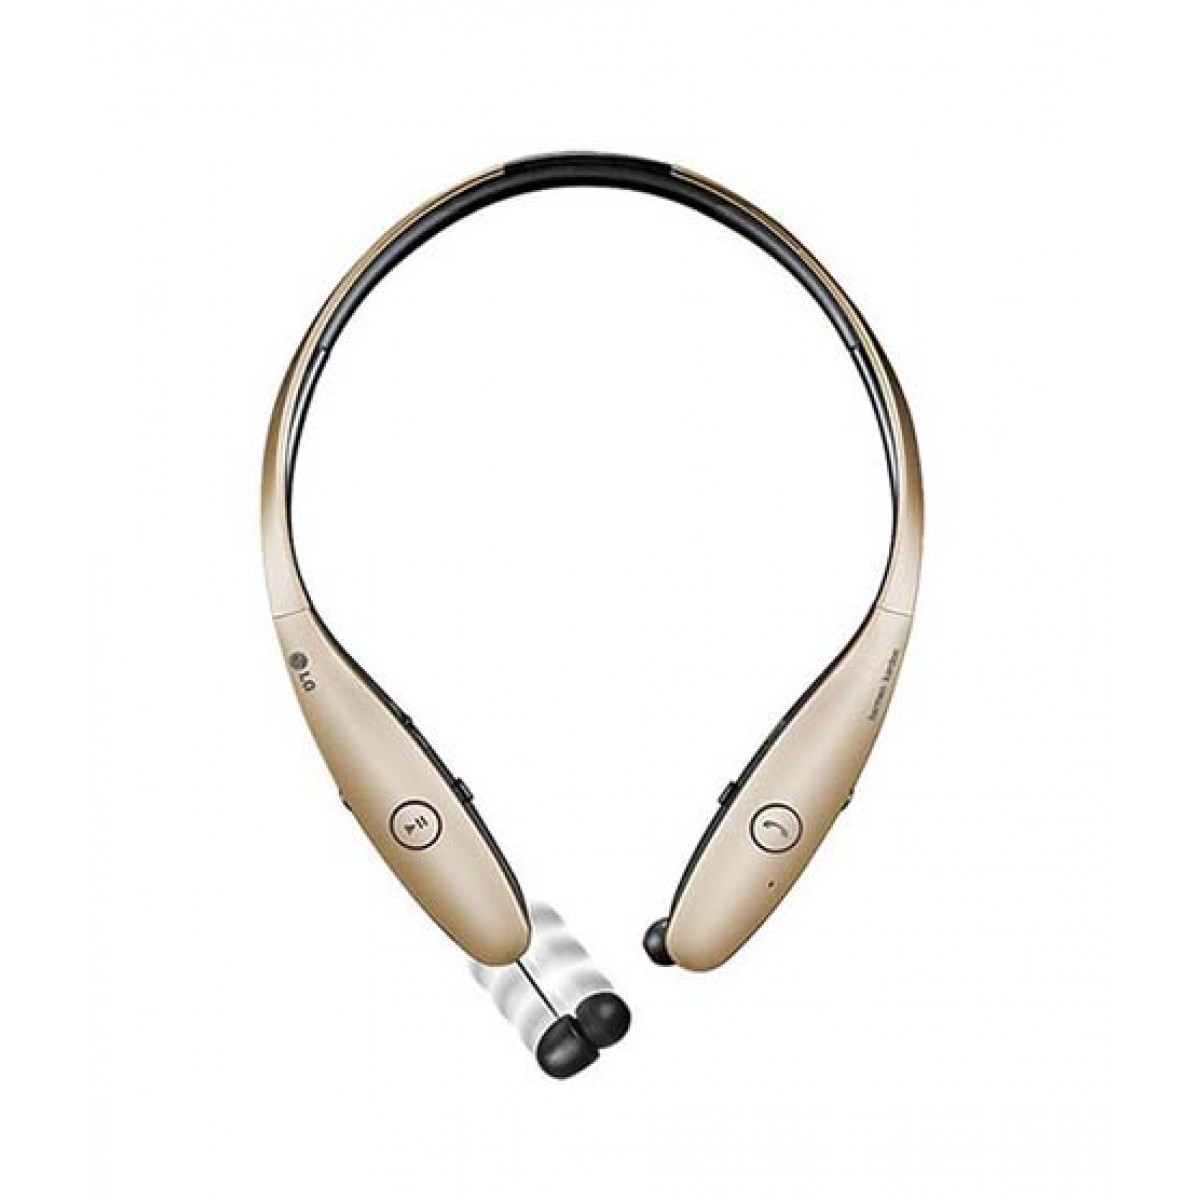 Lg Bluetooth Stereo Headset Price In Pakistan Buy Lg Tone Infinim Bluetooth Stereo Headset Gold Hbs 900 Ishopping Pk